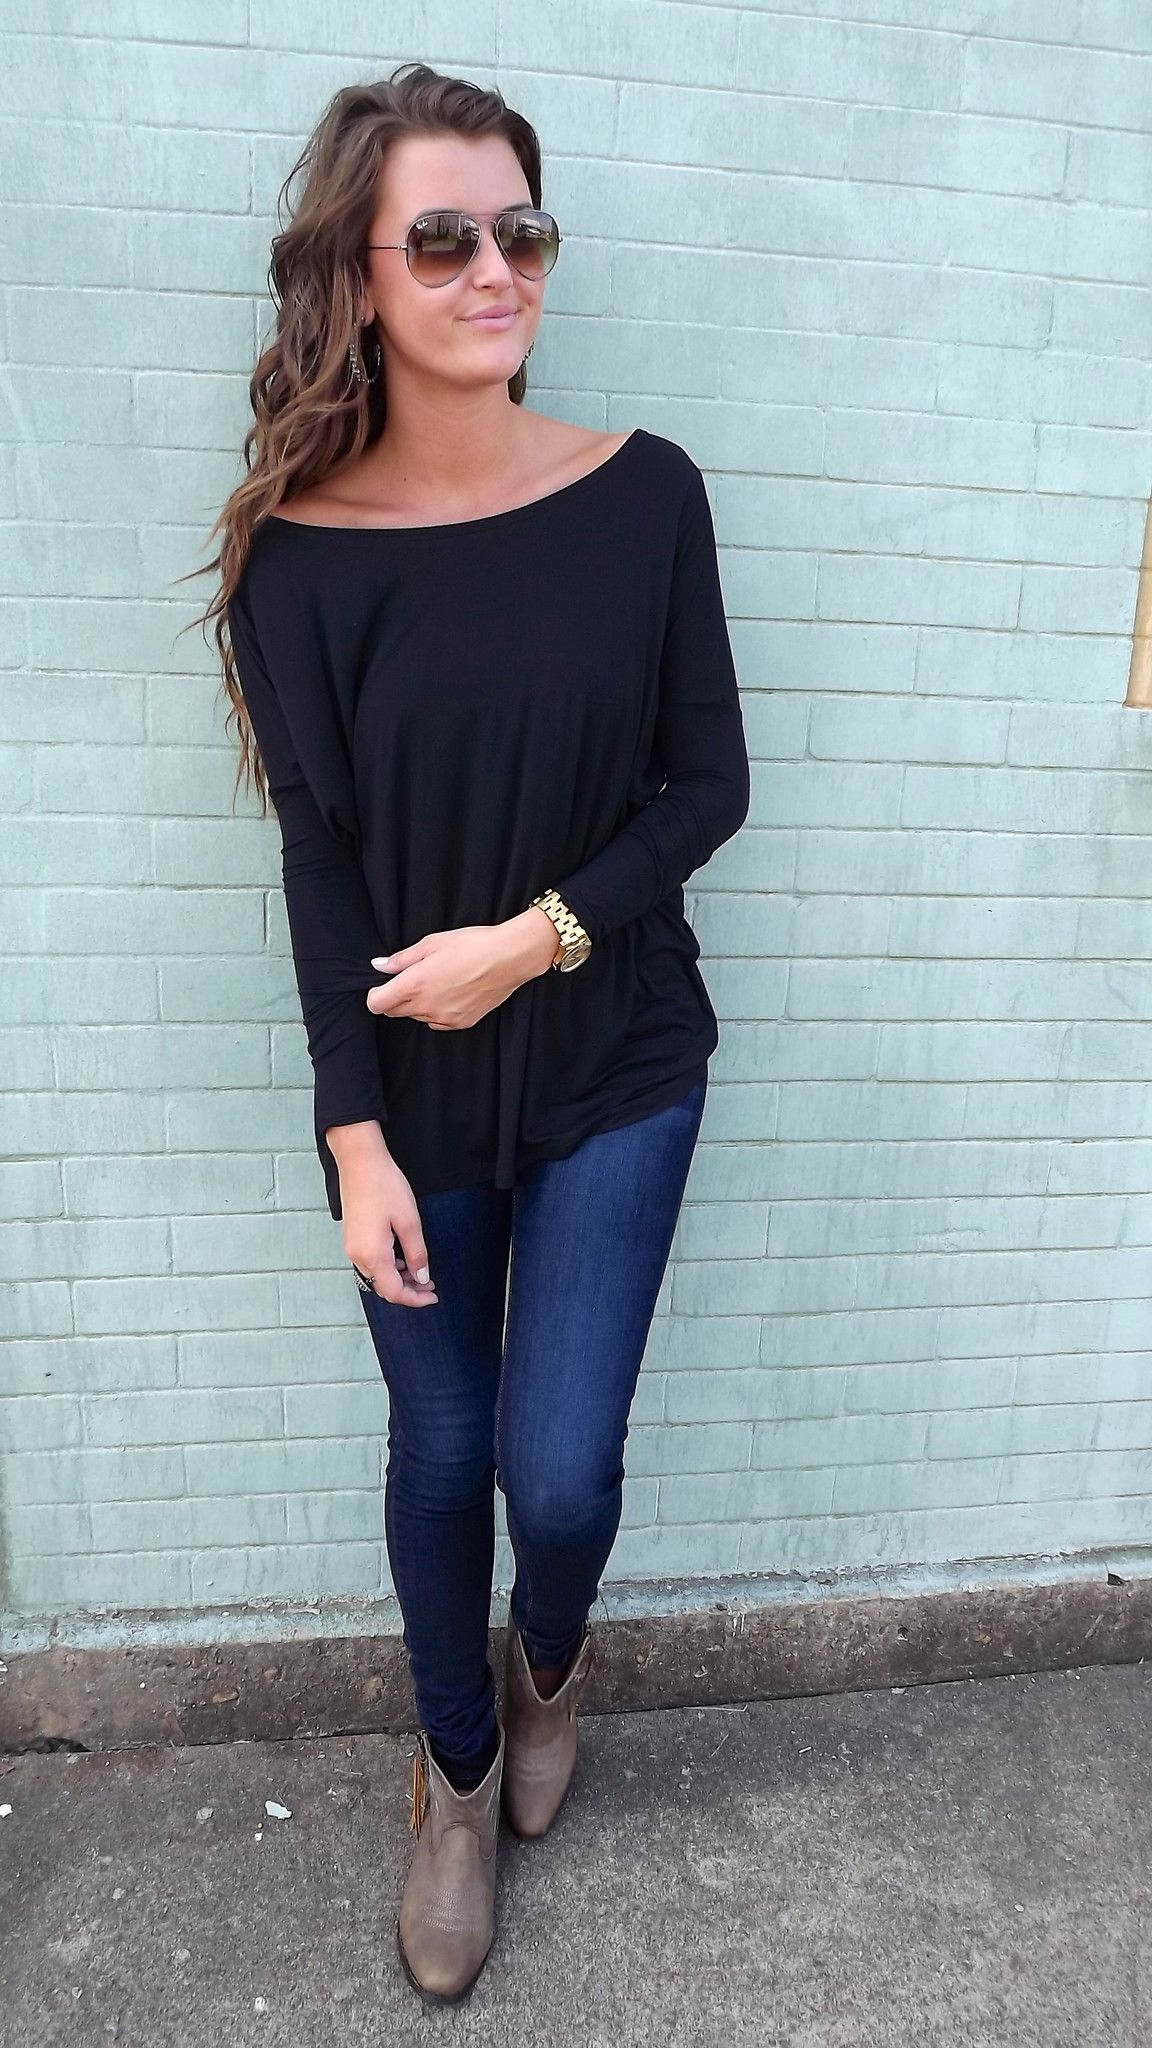 Oversized/loose Fitting Black Long Sleeve. Perfect Fall Outfit For Lazy Days! | For The Love Of Fall